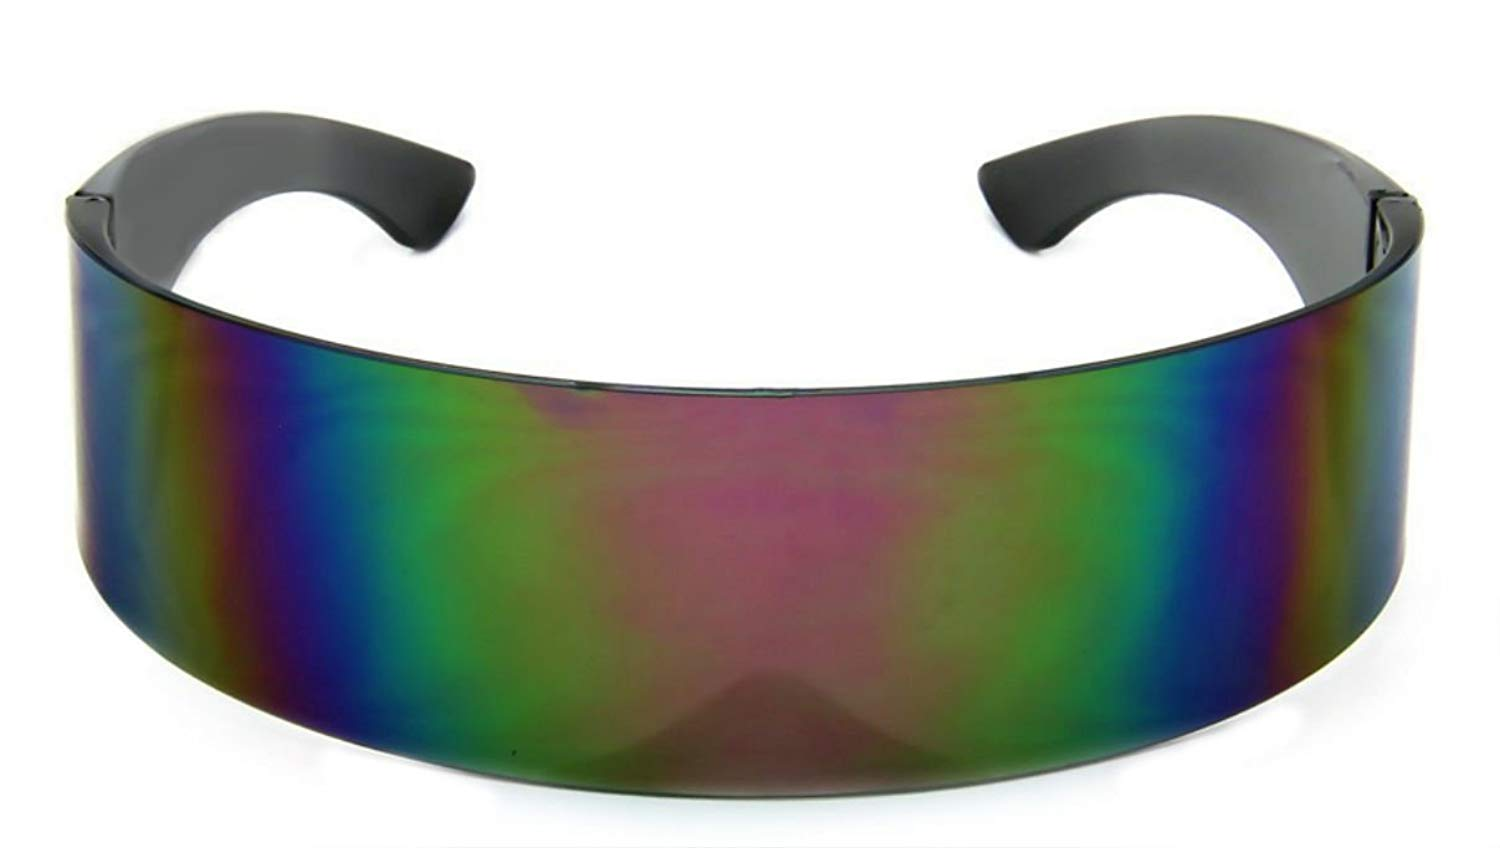 b154000d0f WebDeals - Futuristic Wrap Around Monoblock Cyclops Shield Sunglasses…